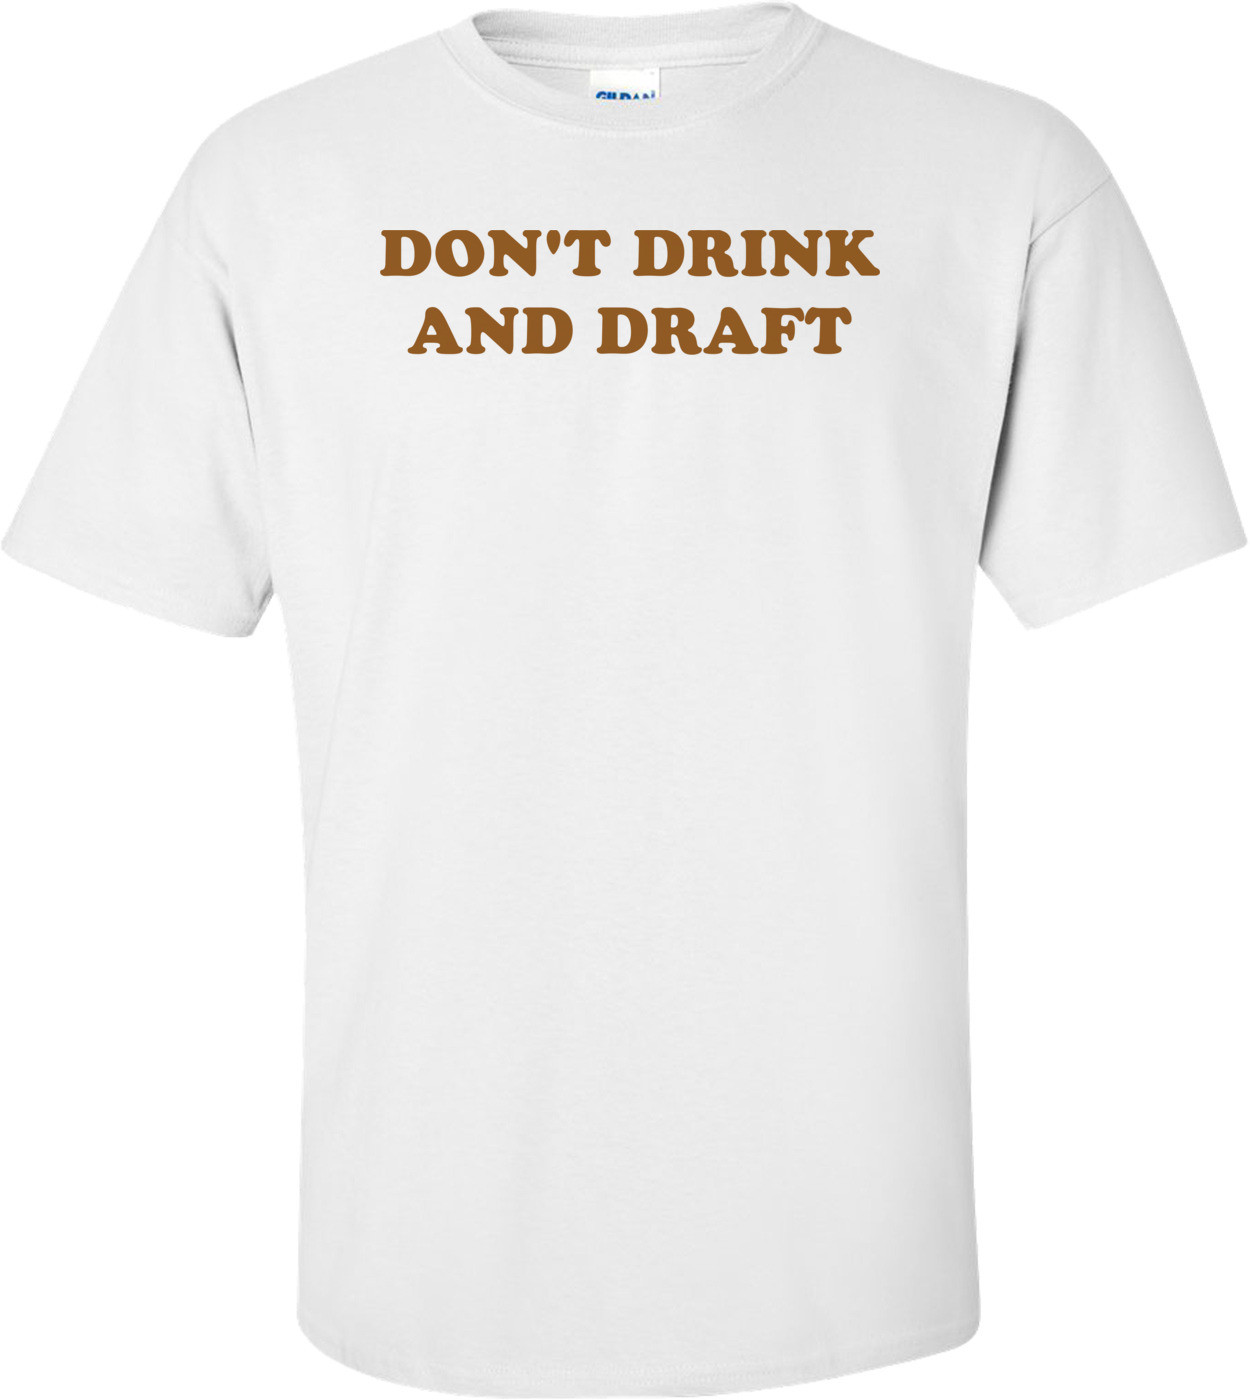 DON'T DRINK AND DRAFT Shirt